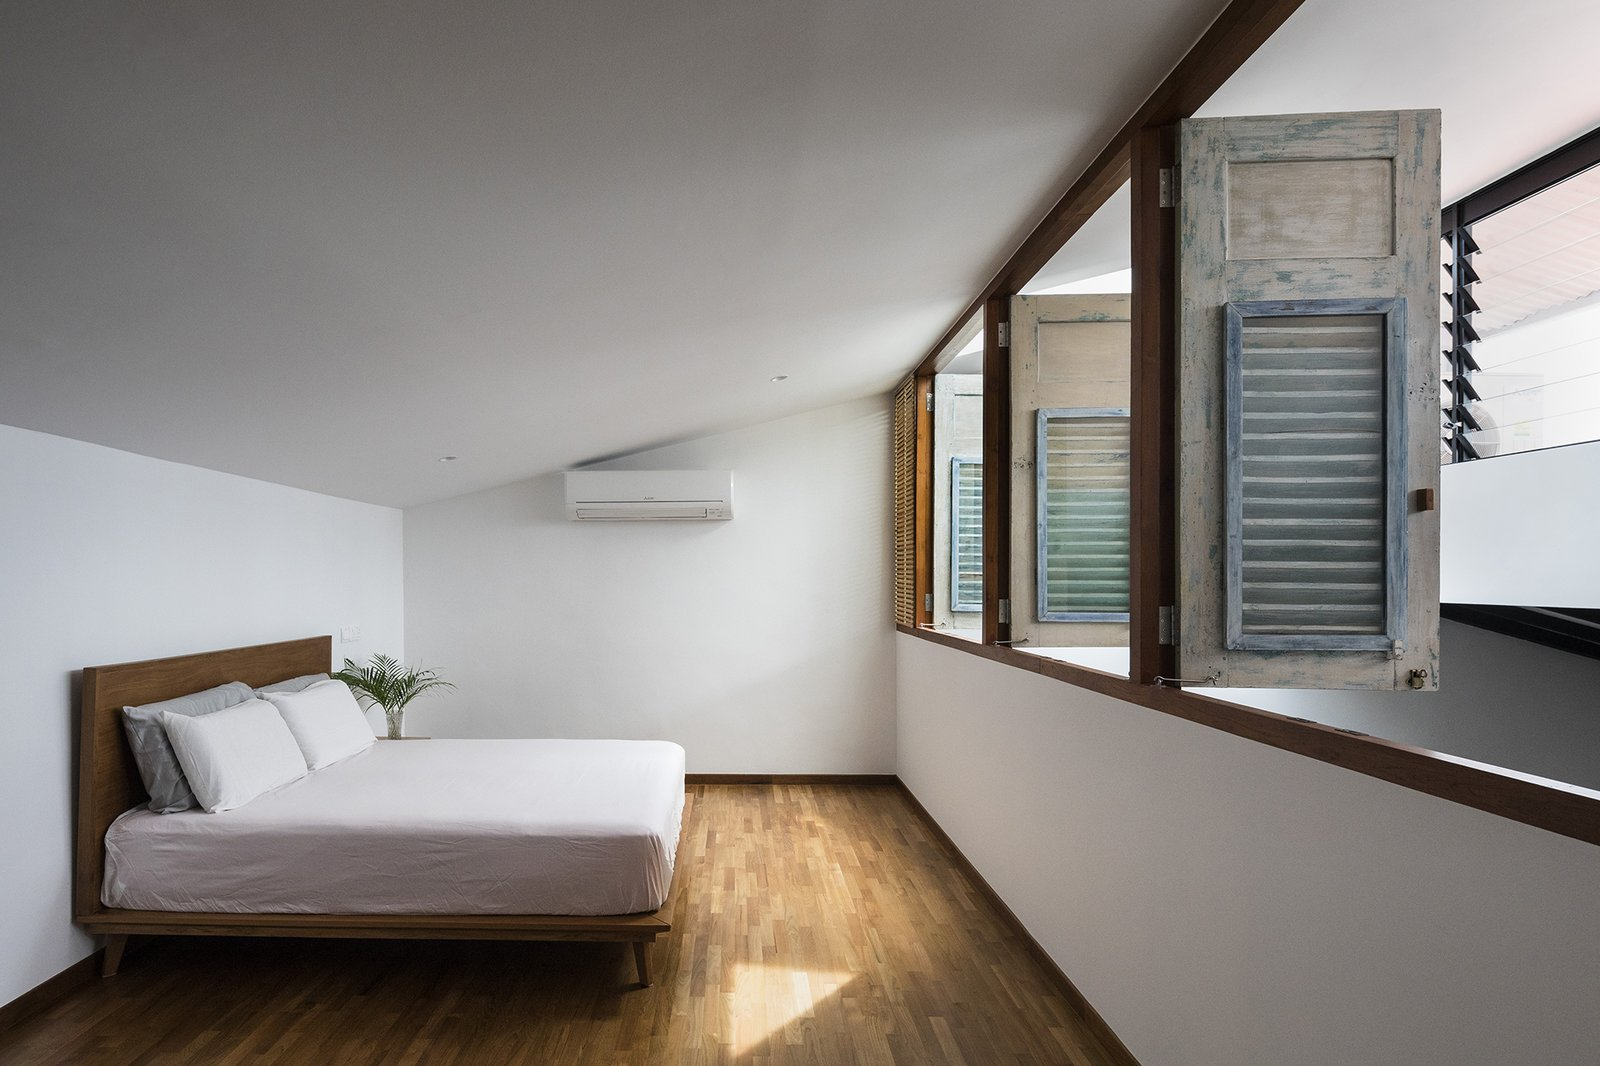 Heng House by Goy Architects Bedroom, Upcycling, Tropical Architecture, Natural Light